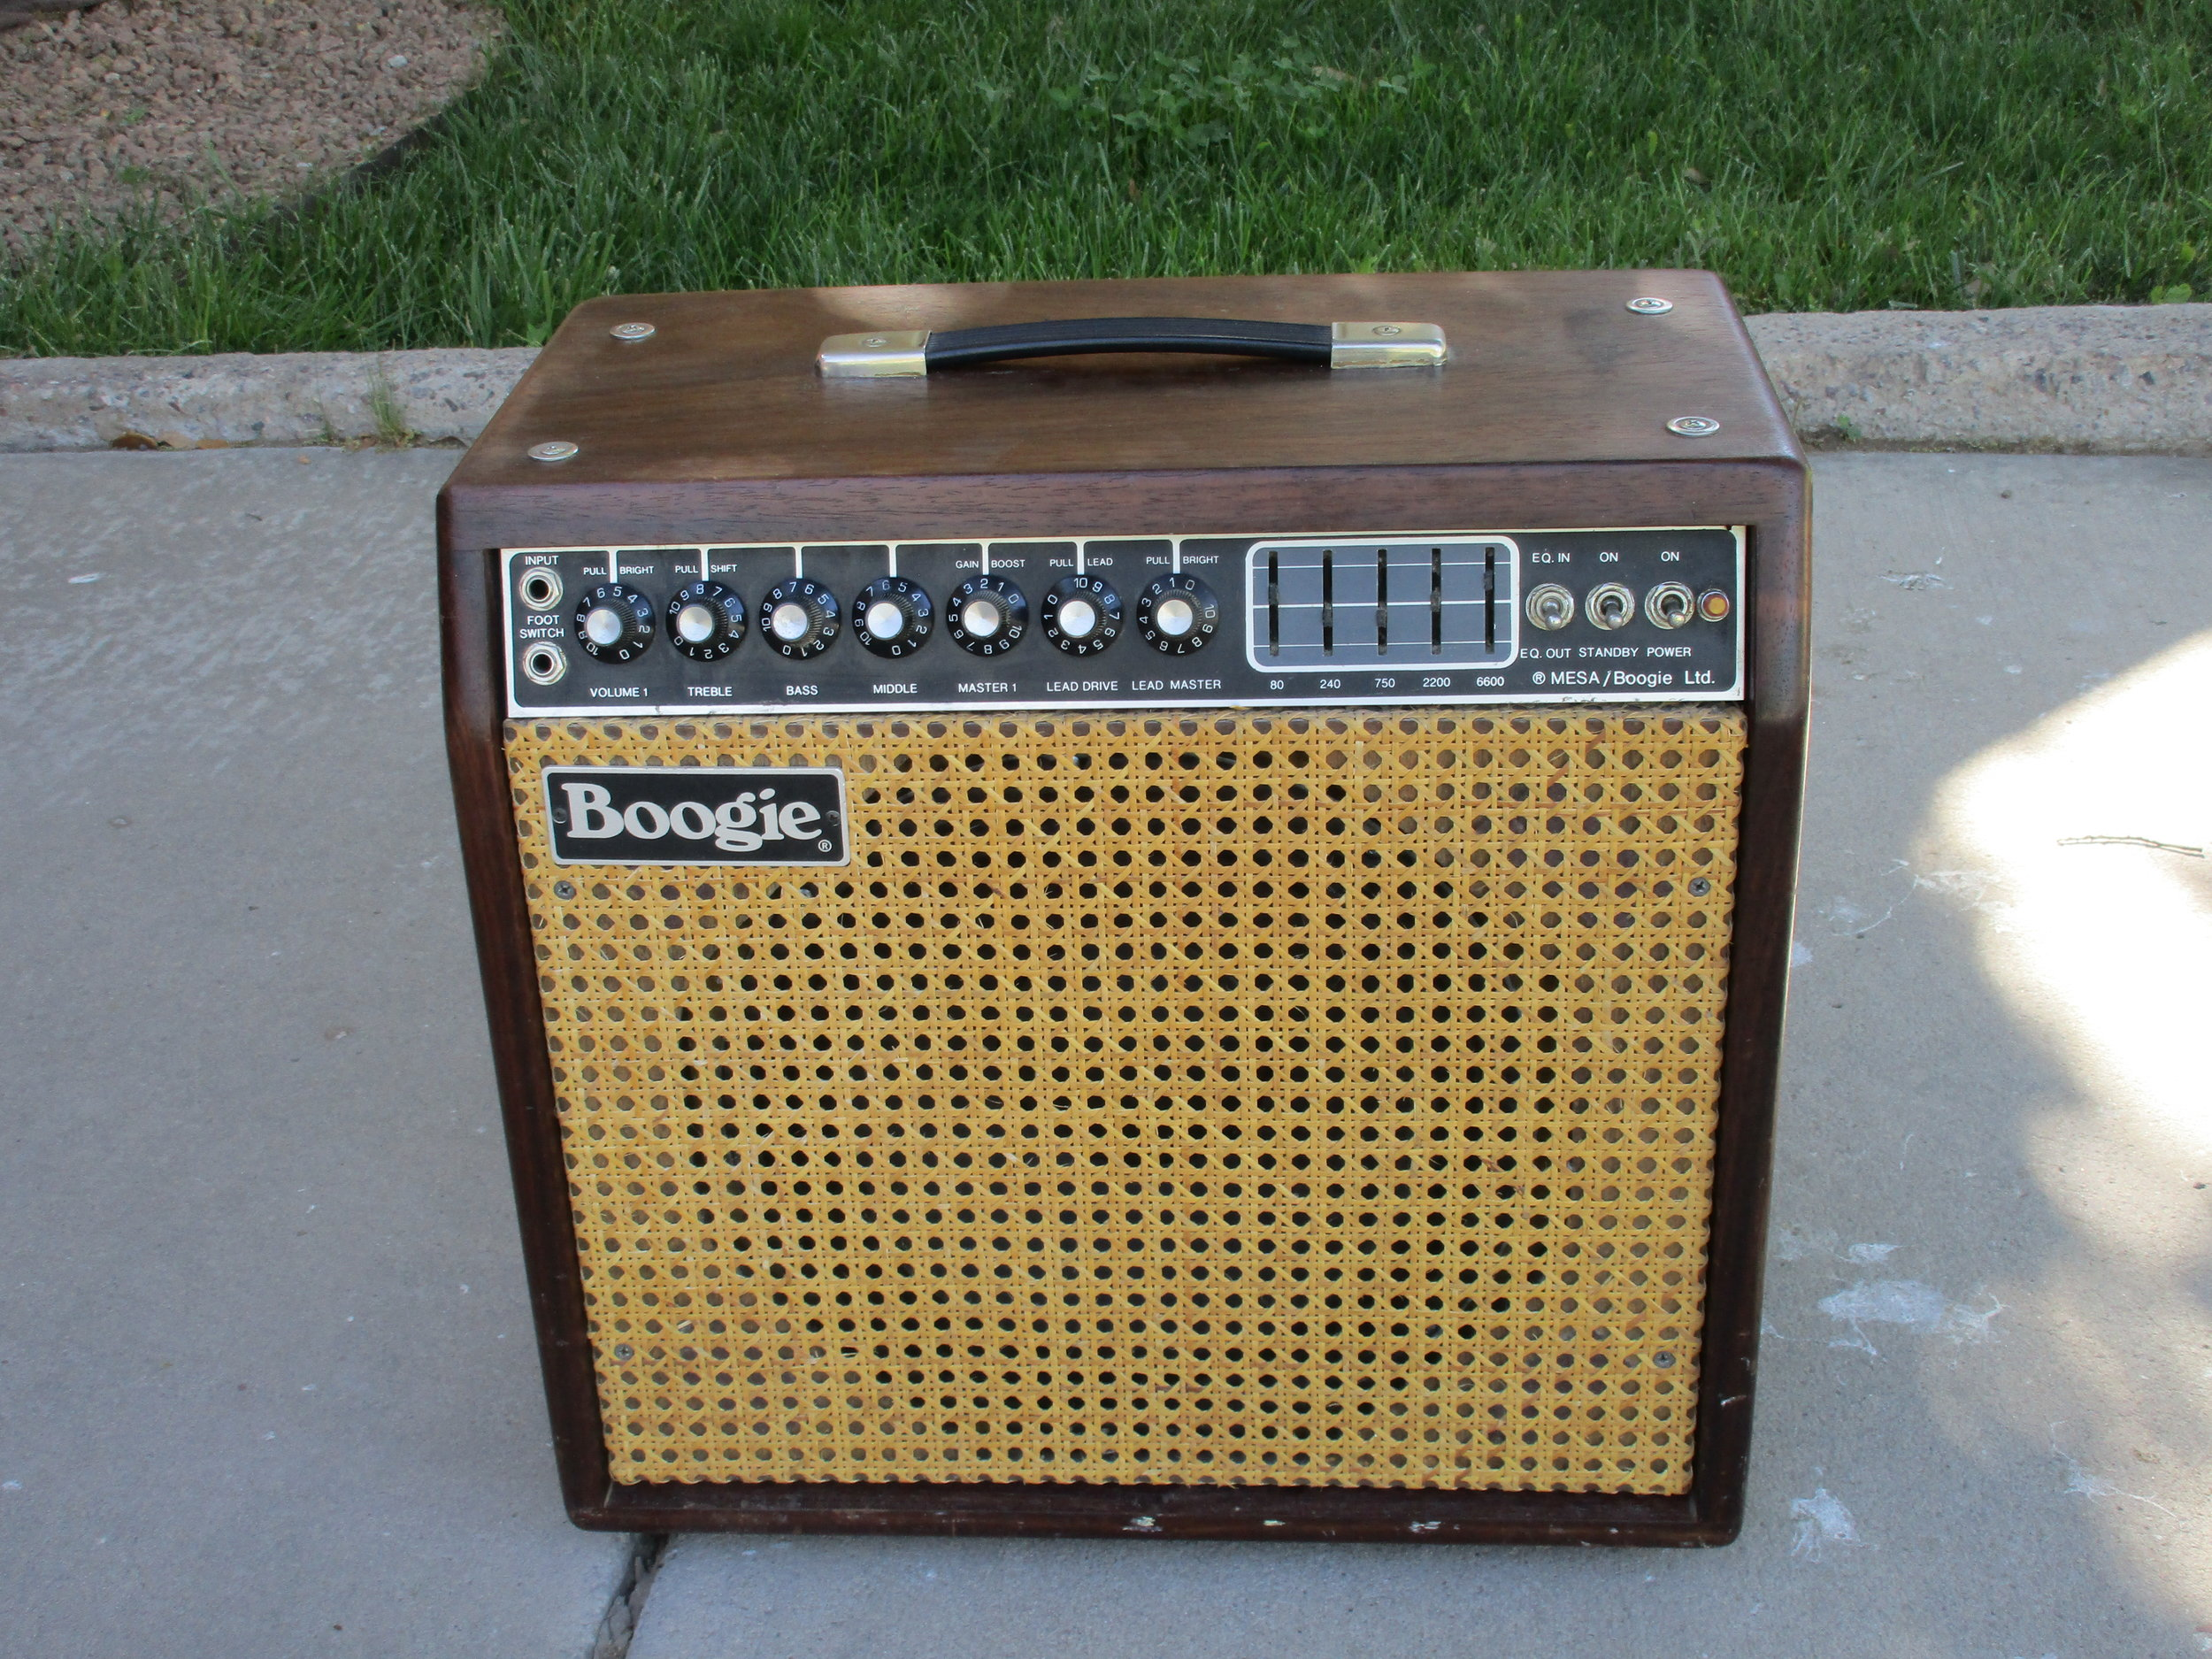 I restored this Mesa Boogie Mark II B. It's an interesting amp and gets that Santana kind of sound as well as Fenderish cleans. The Electro-Voice speaker serves up great sound and can double as a boat anchor. It's certainly it's one of Mesa's better models. It's ridiculously compact and difficult to service due to it's construction.